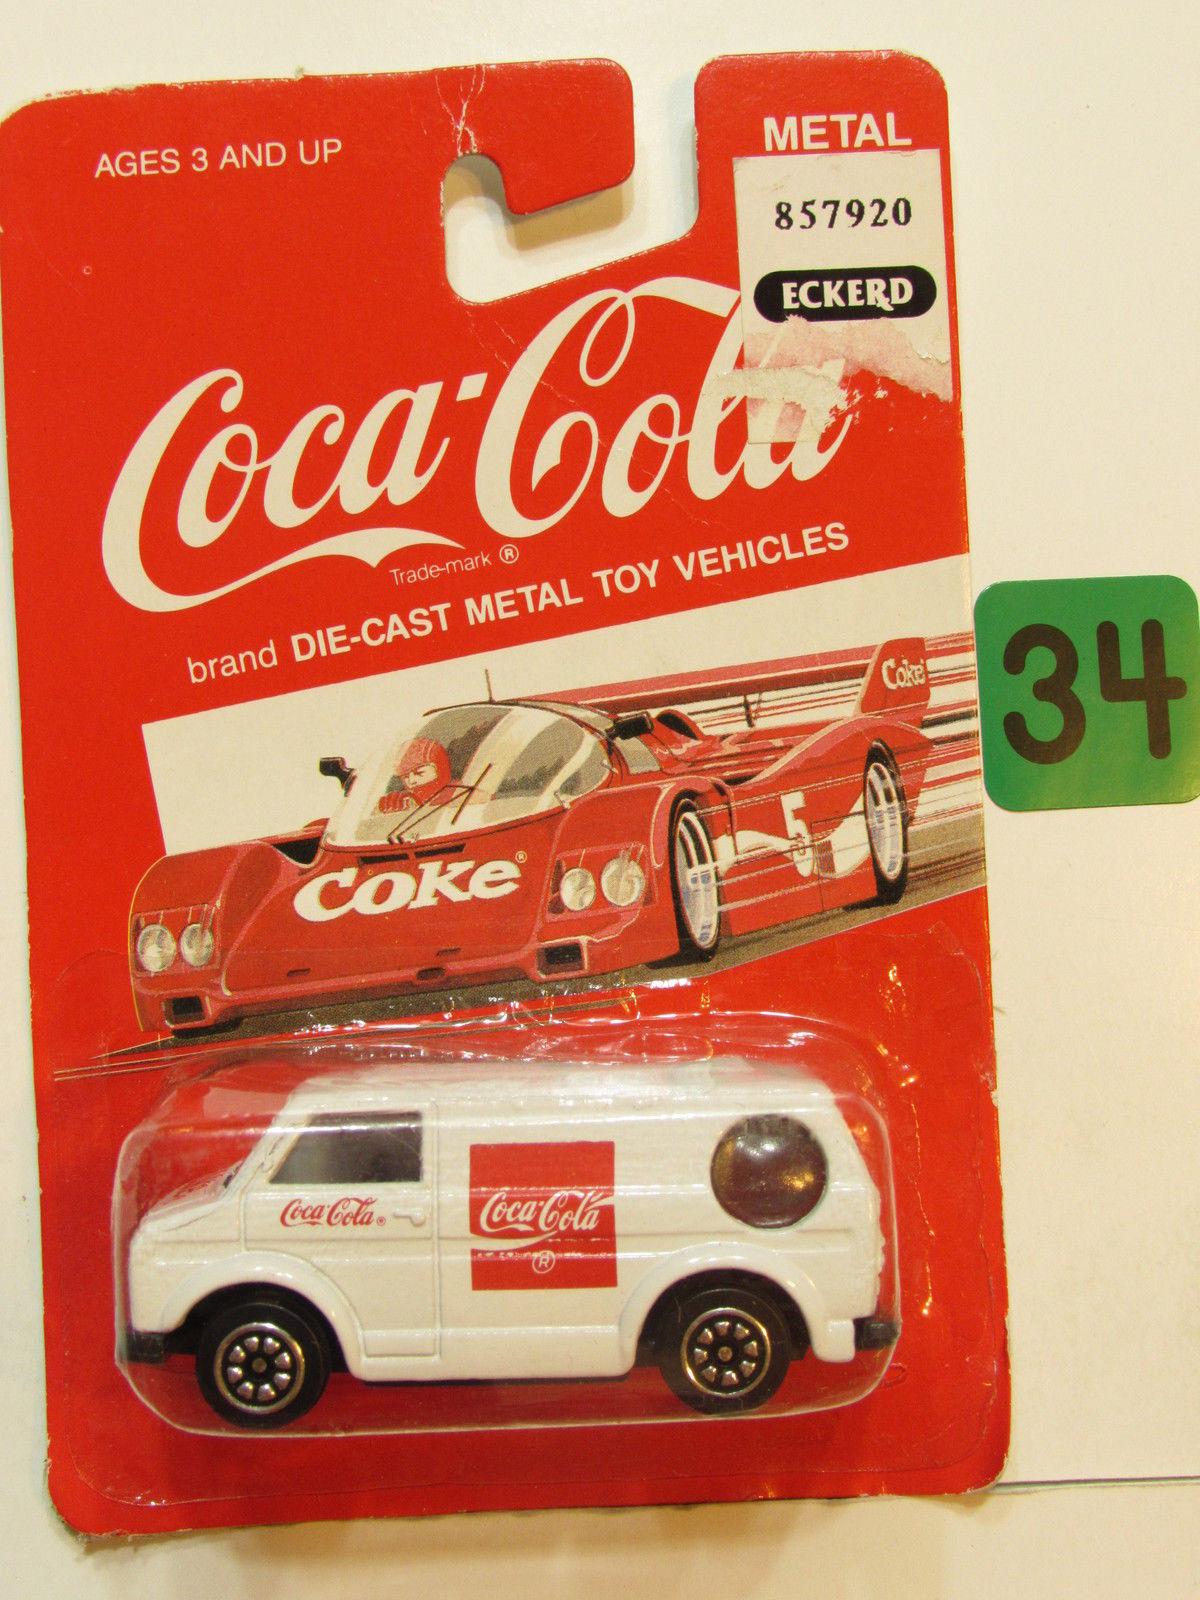 COCA COLA DIE CAST METAL TOY VEHICLES DELIVERY VAN WHITE